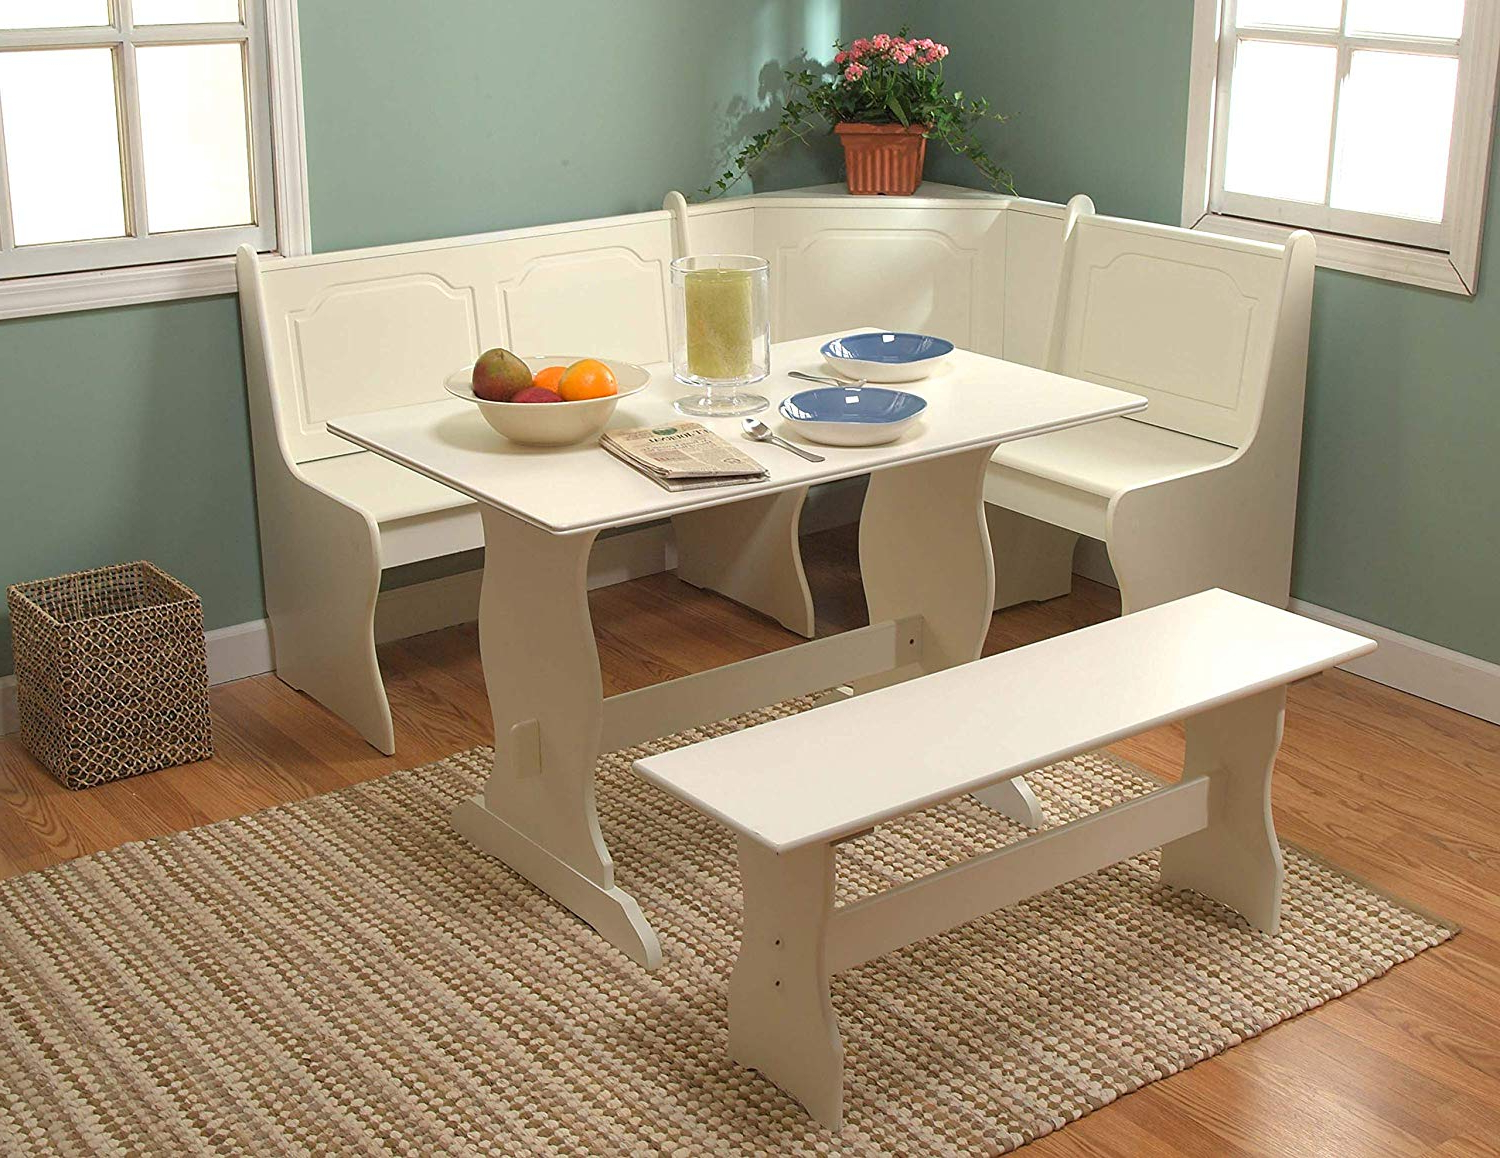 Amazon: Target Marketing Systems 3 Piece Breakfast Nook Dining Pertaining To Favorite 3 Piece Breakfast Dining Sets (View 25 of 25)